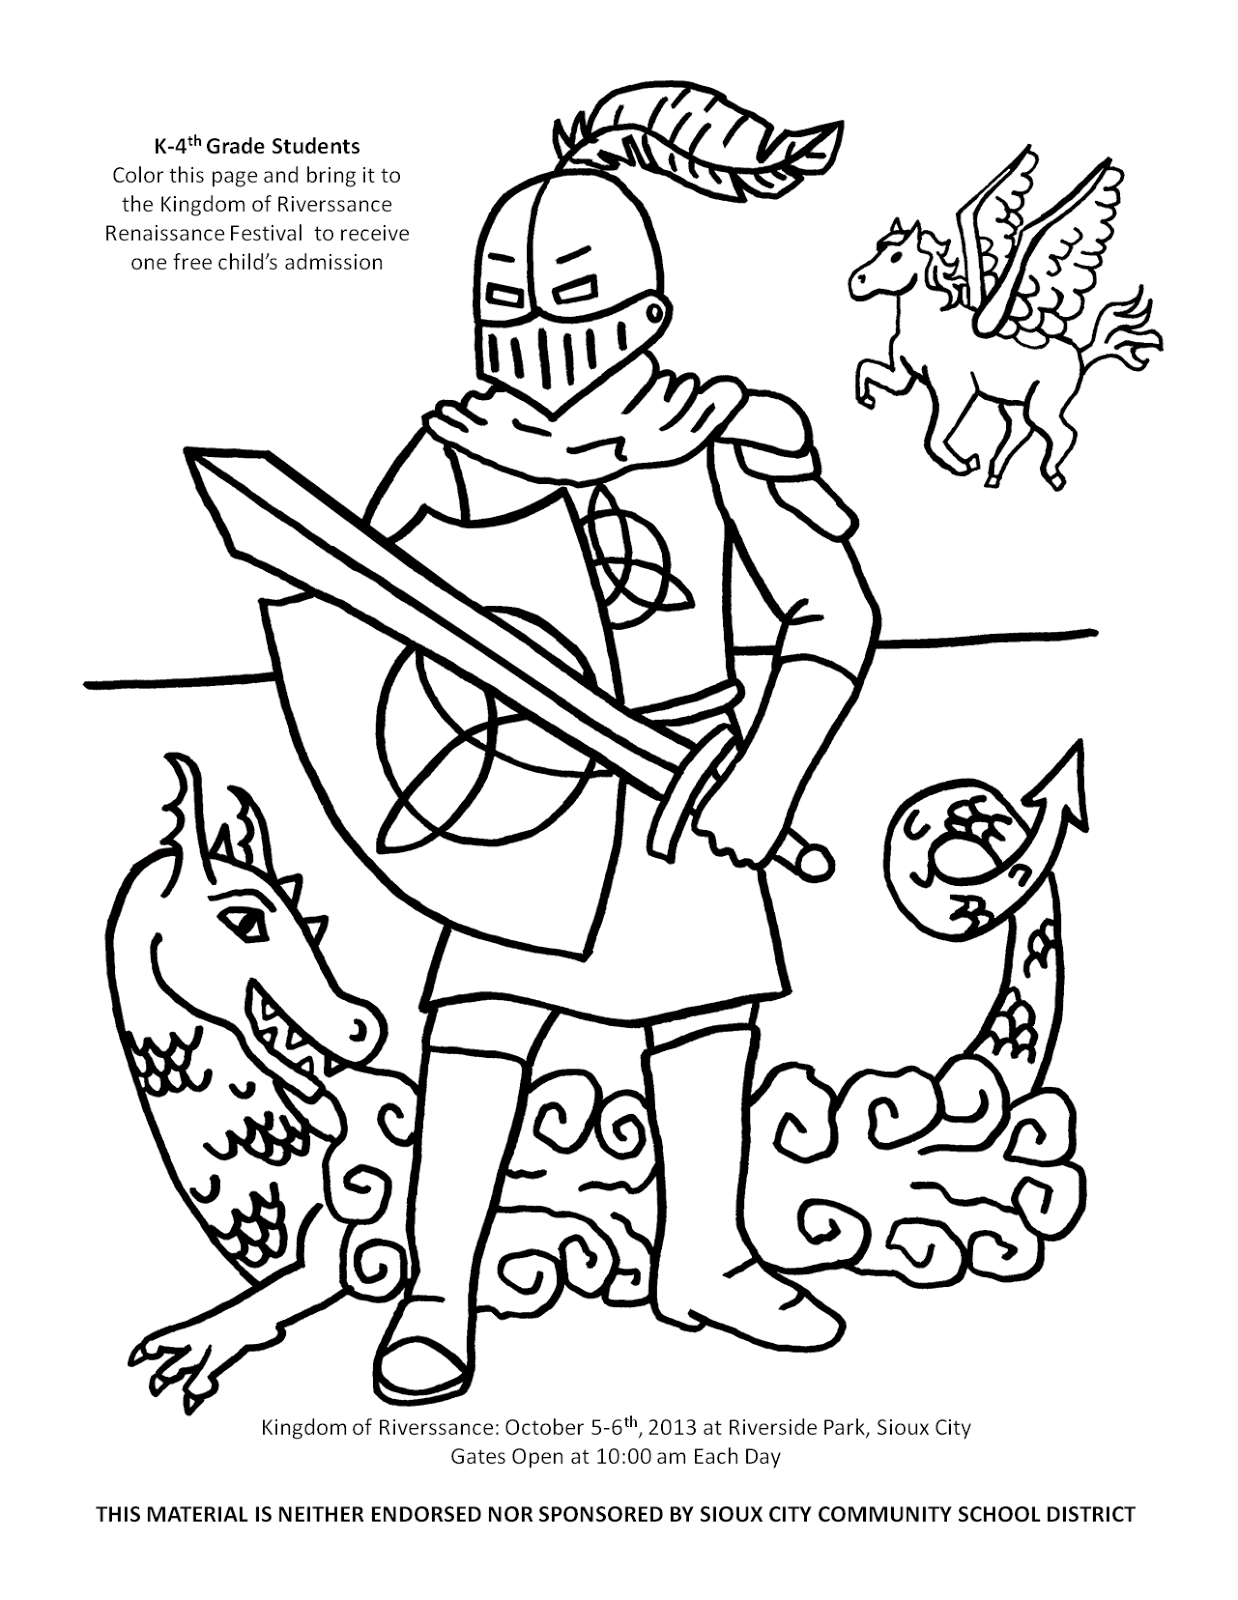 Renaissance princess coloring pages -  Coloring Pages Also I D Better Find The Box Labeled Dress Up And Soon Since They Really Want To Wear Their Princess Dresses Split Front Irish